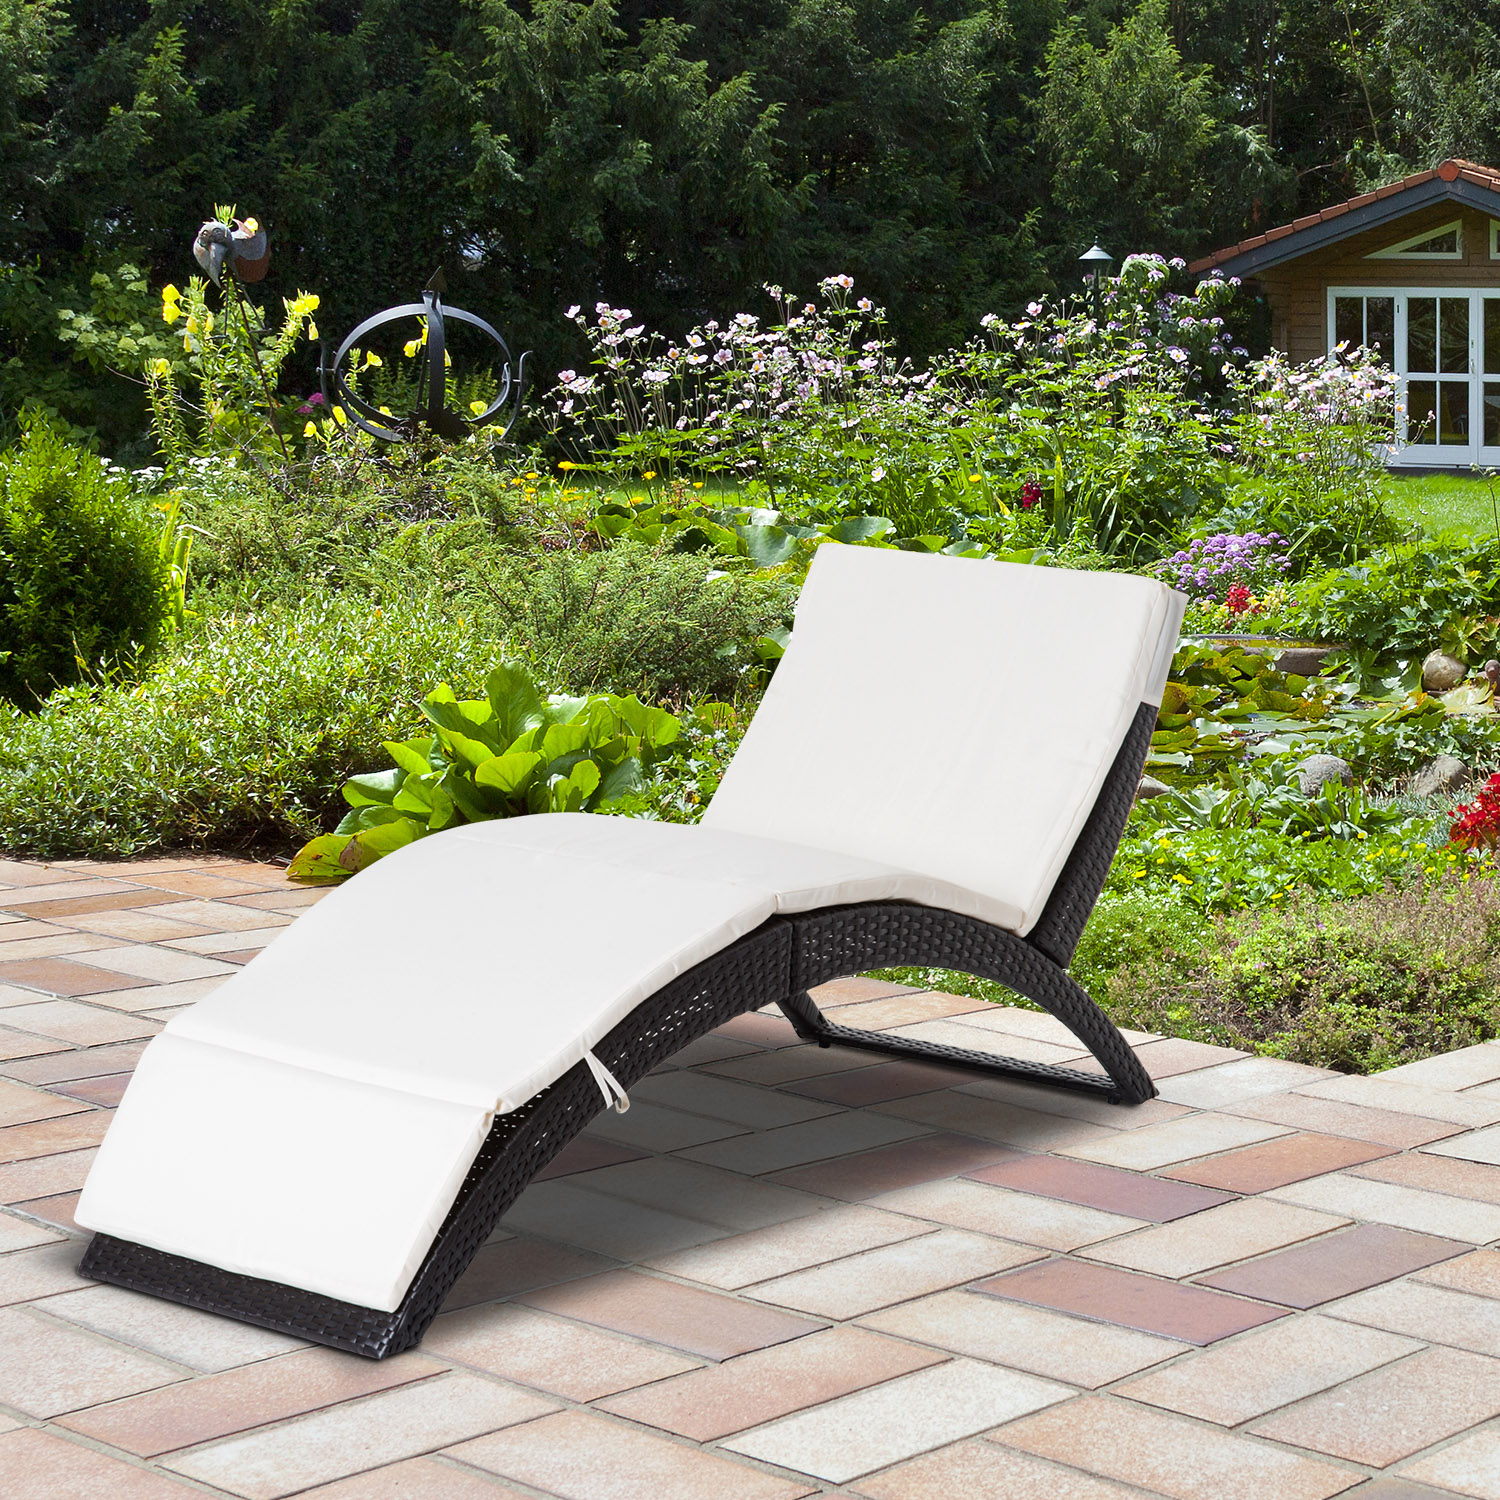 Image of CAD $169.99 Outsunny Patio Wicker Lounger Recliner Bed Folding Outdoor with Cushion / Chaise Garden w/ Canada 25093583995